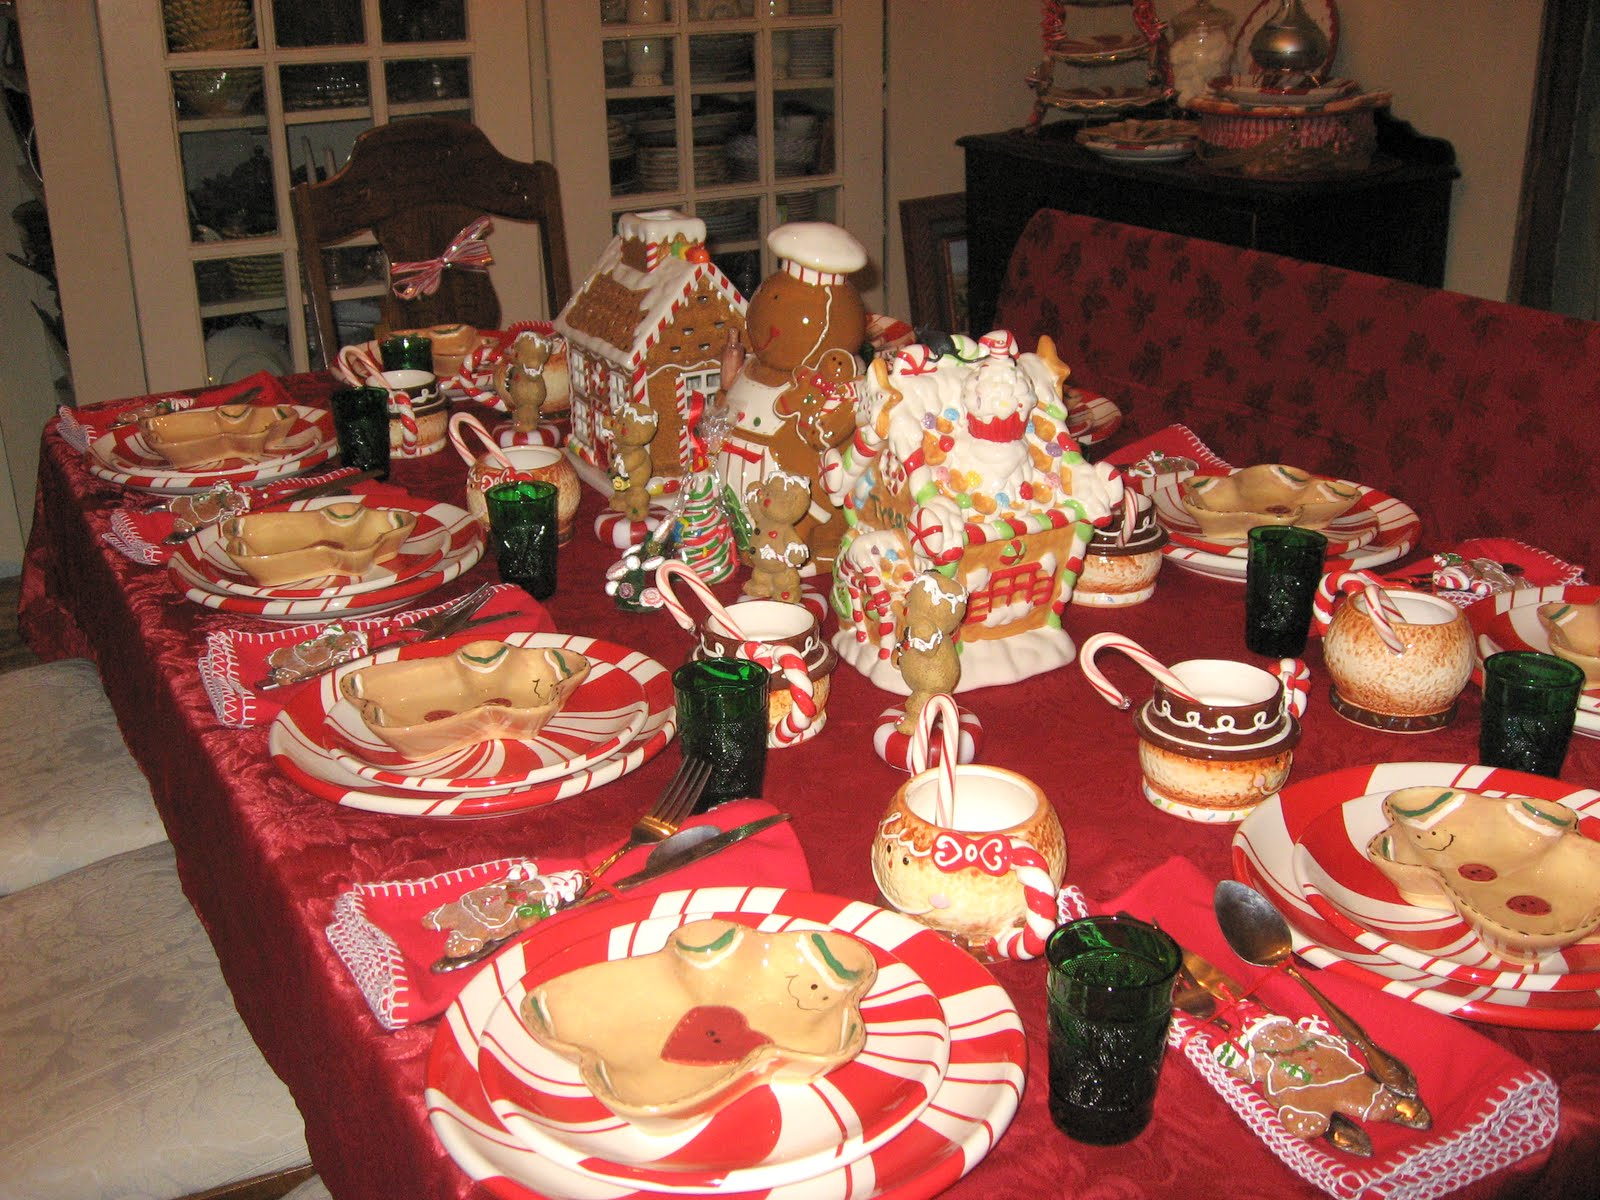 GINGERBREAD and PEPPERMINT DISHES TABLESCAPE & GINGERBREAD and PEPPERMINT DISHES TABLESCAPE | Lady Katherine Tea Parlor